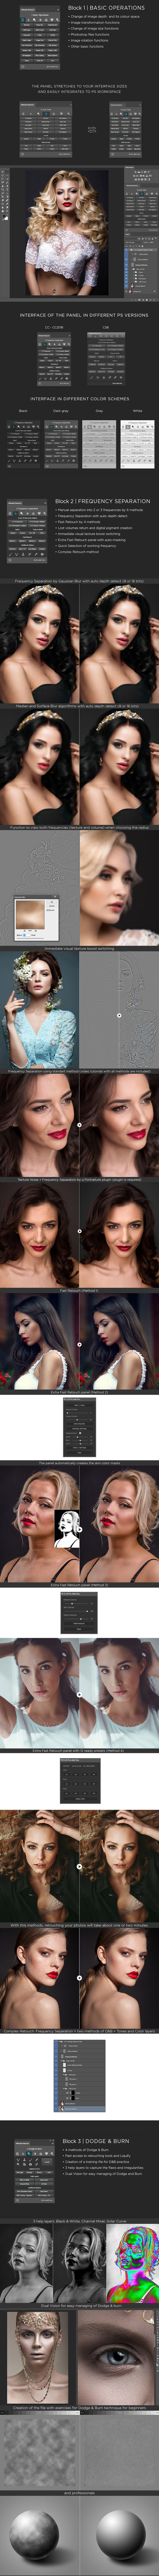 Retouching tool preview 2